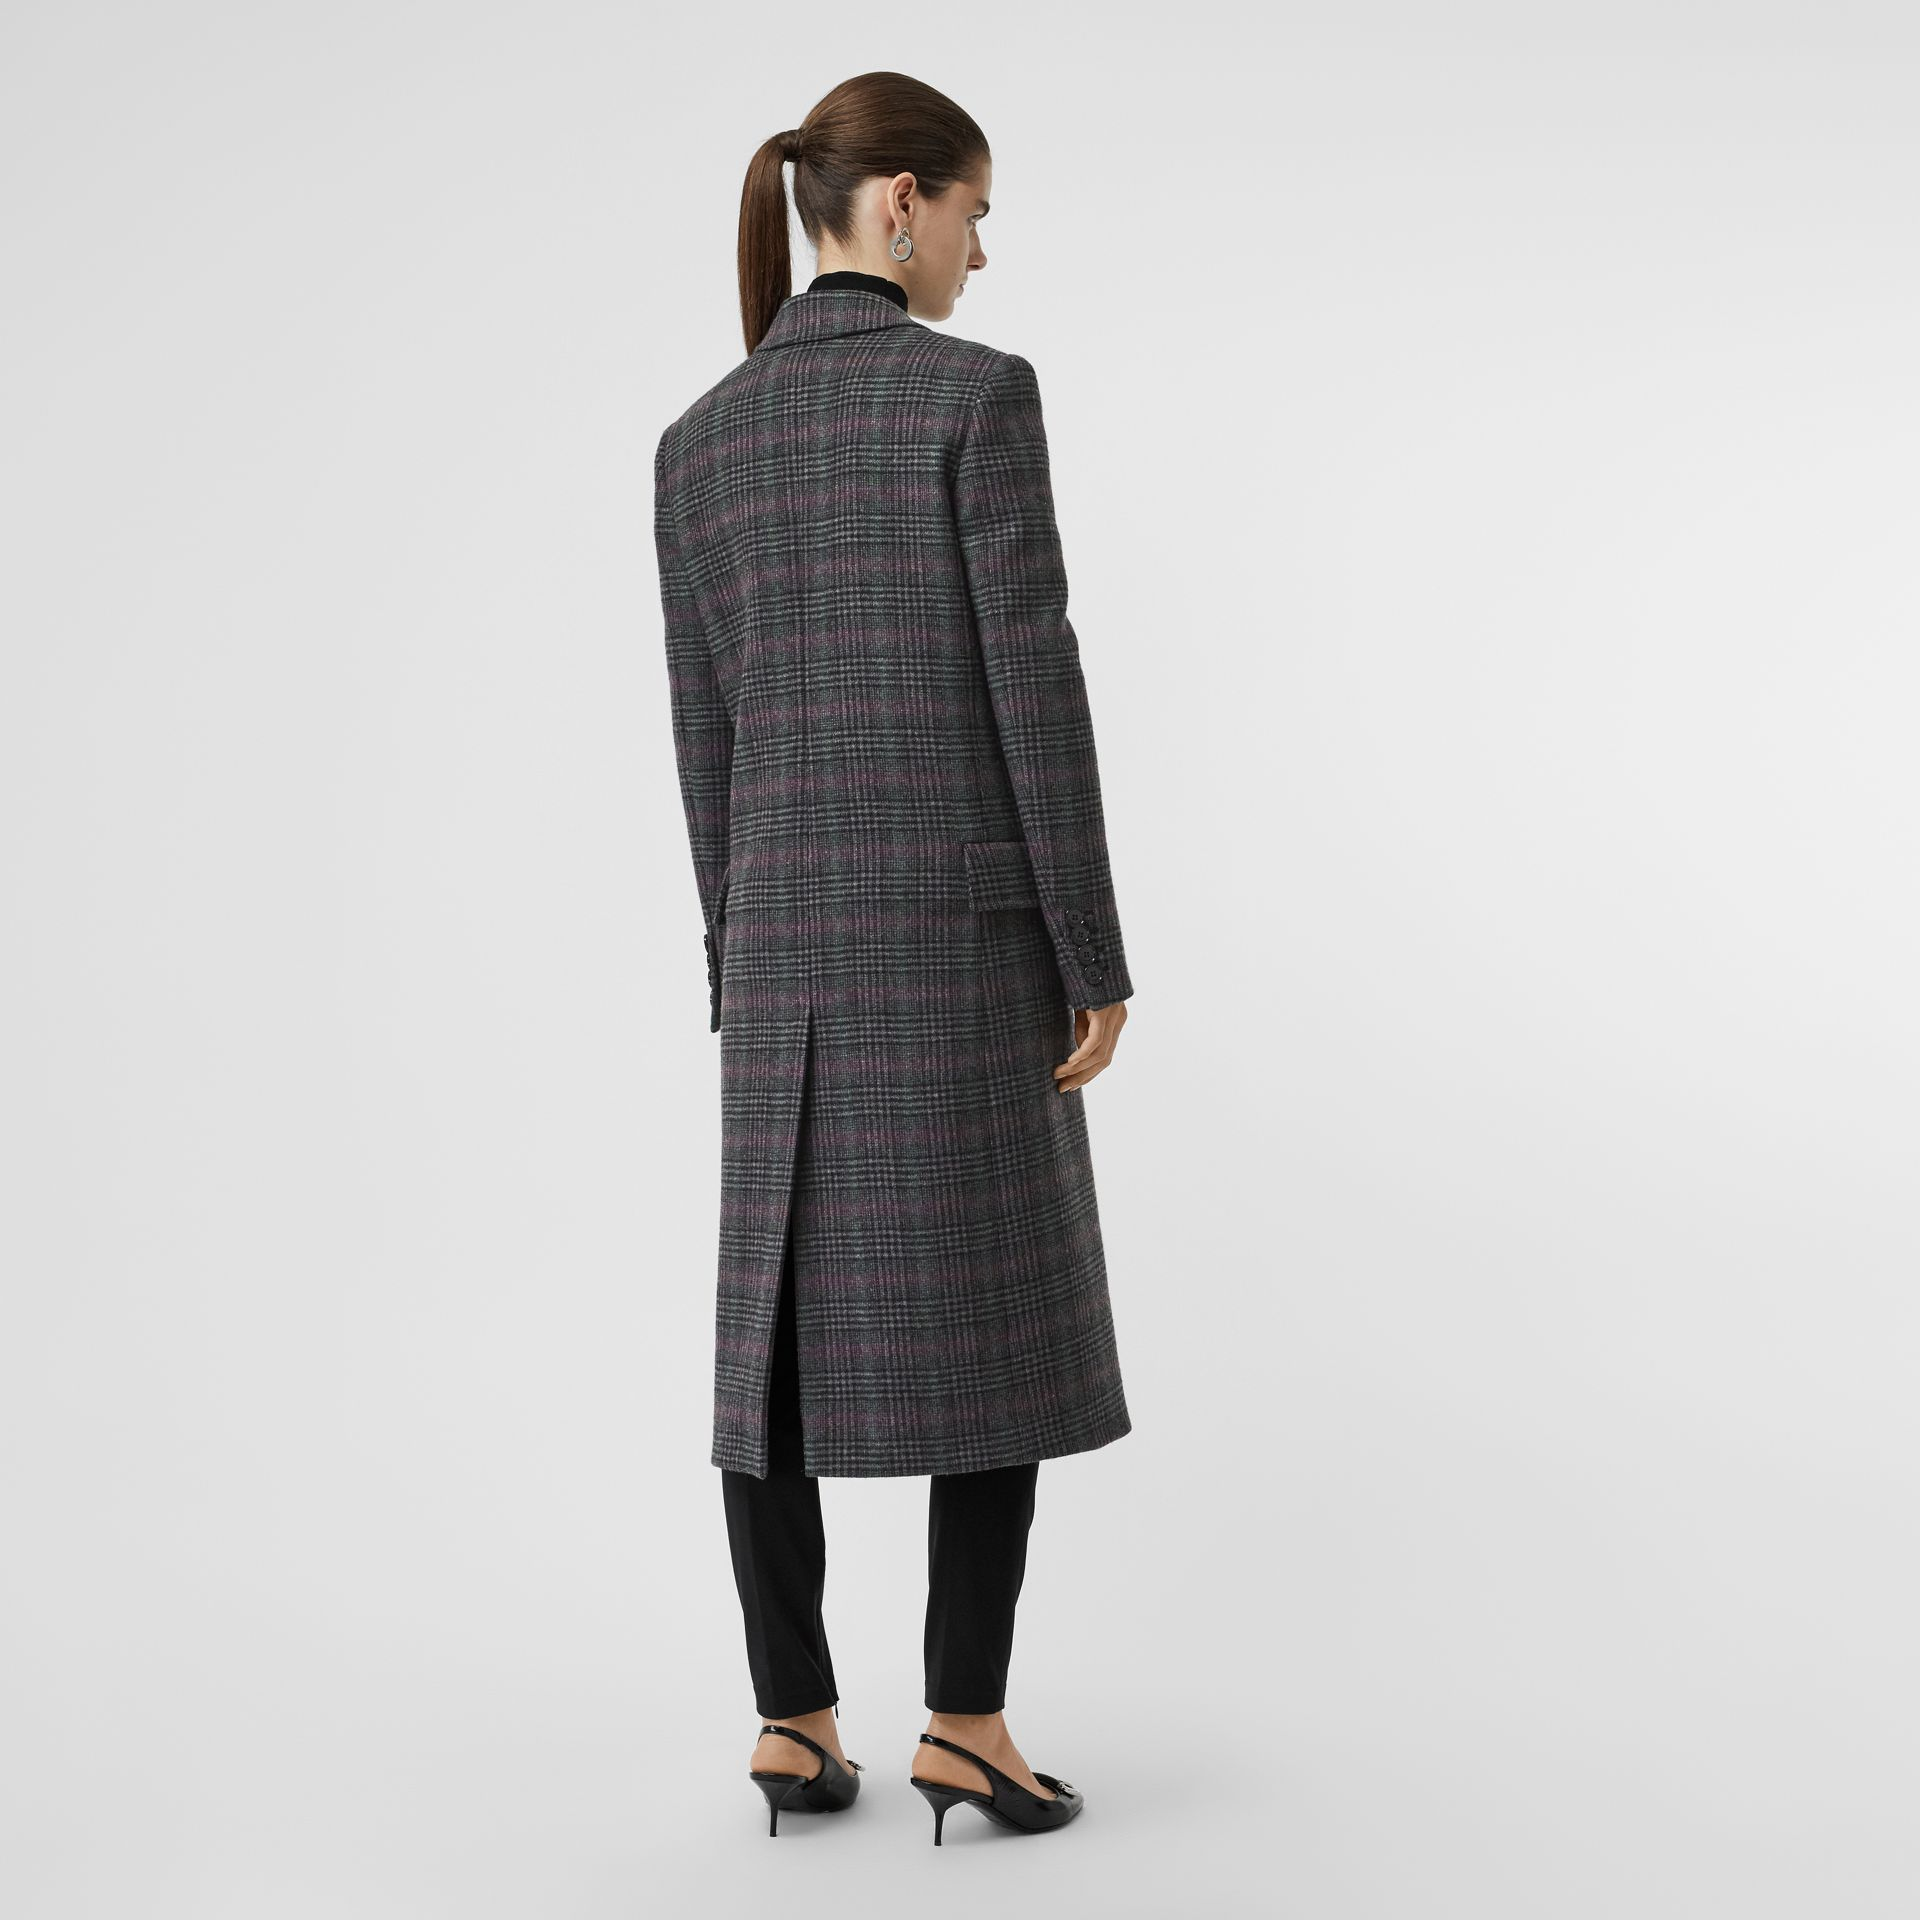 Prince of Wales Check Wool Tailored Coat in Charcoal - Women | Burberry - gallery image 2